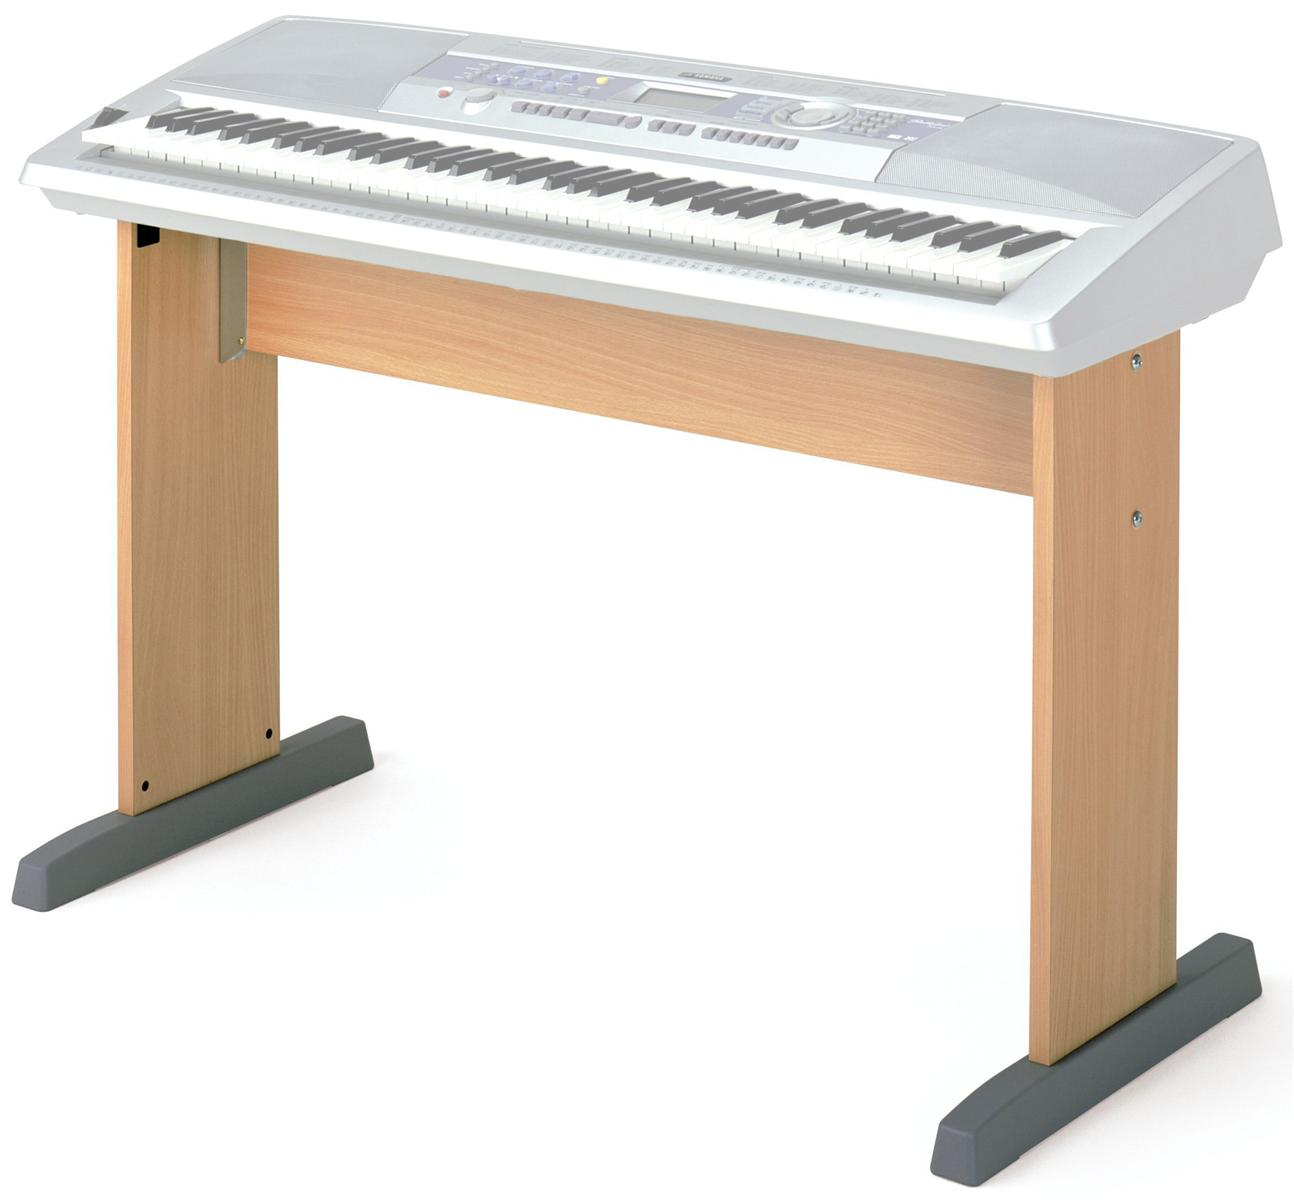 portable keyboards casio yamaha roland portable keyboards for sale at musiciansbuy. Black Bedroom Furniture Sets. Home Design Ideas